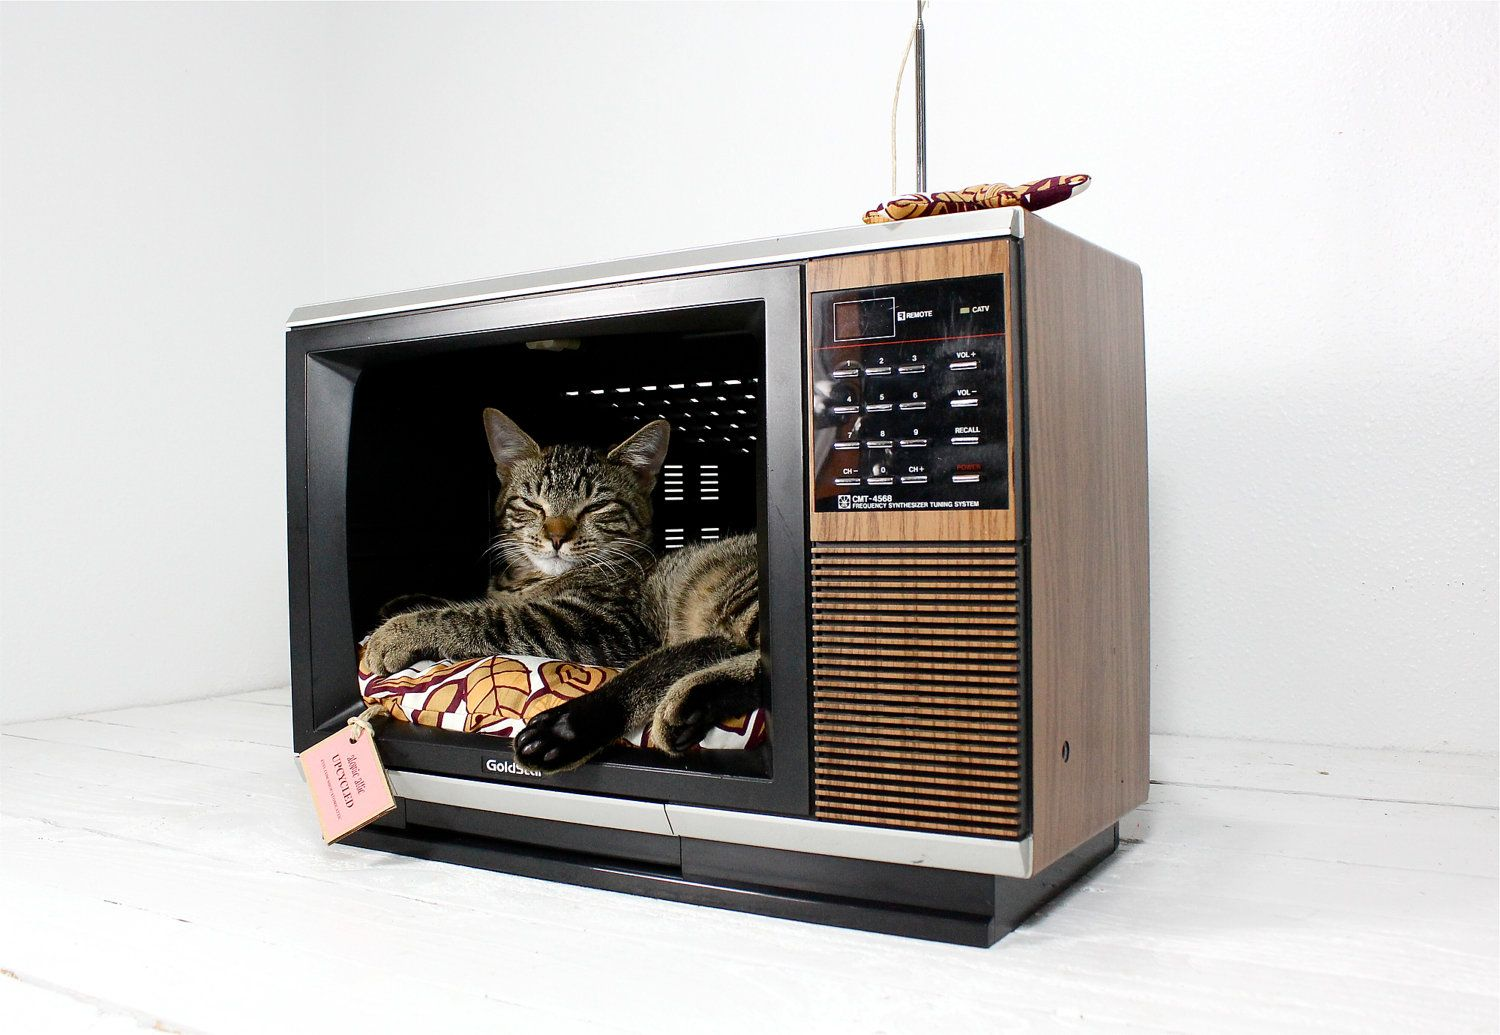 http://remobilia.com/wp-content/uploads/2013/02/Upcycled-Television-Pet-Bed.jpg